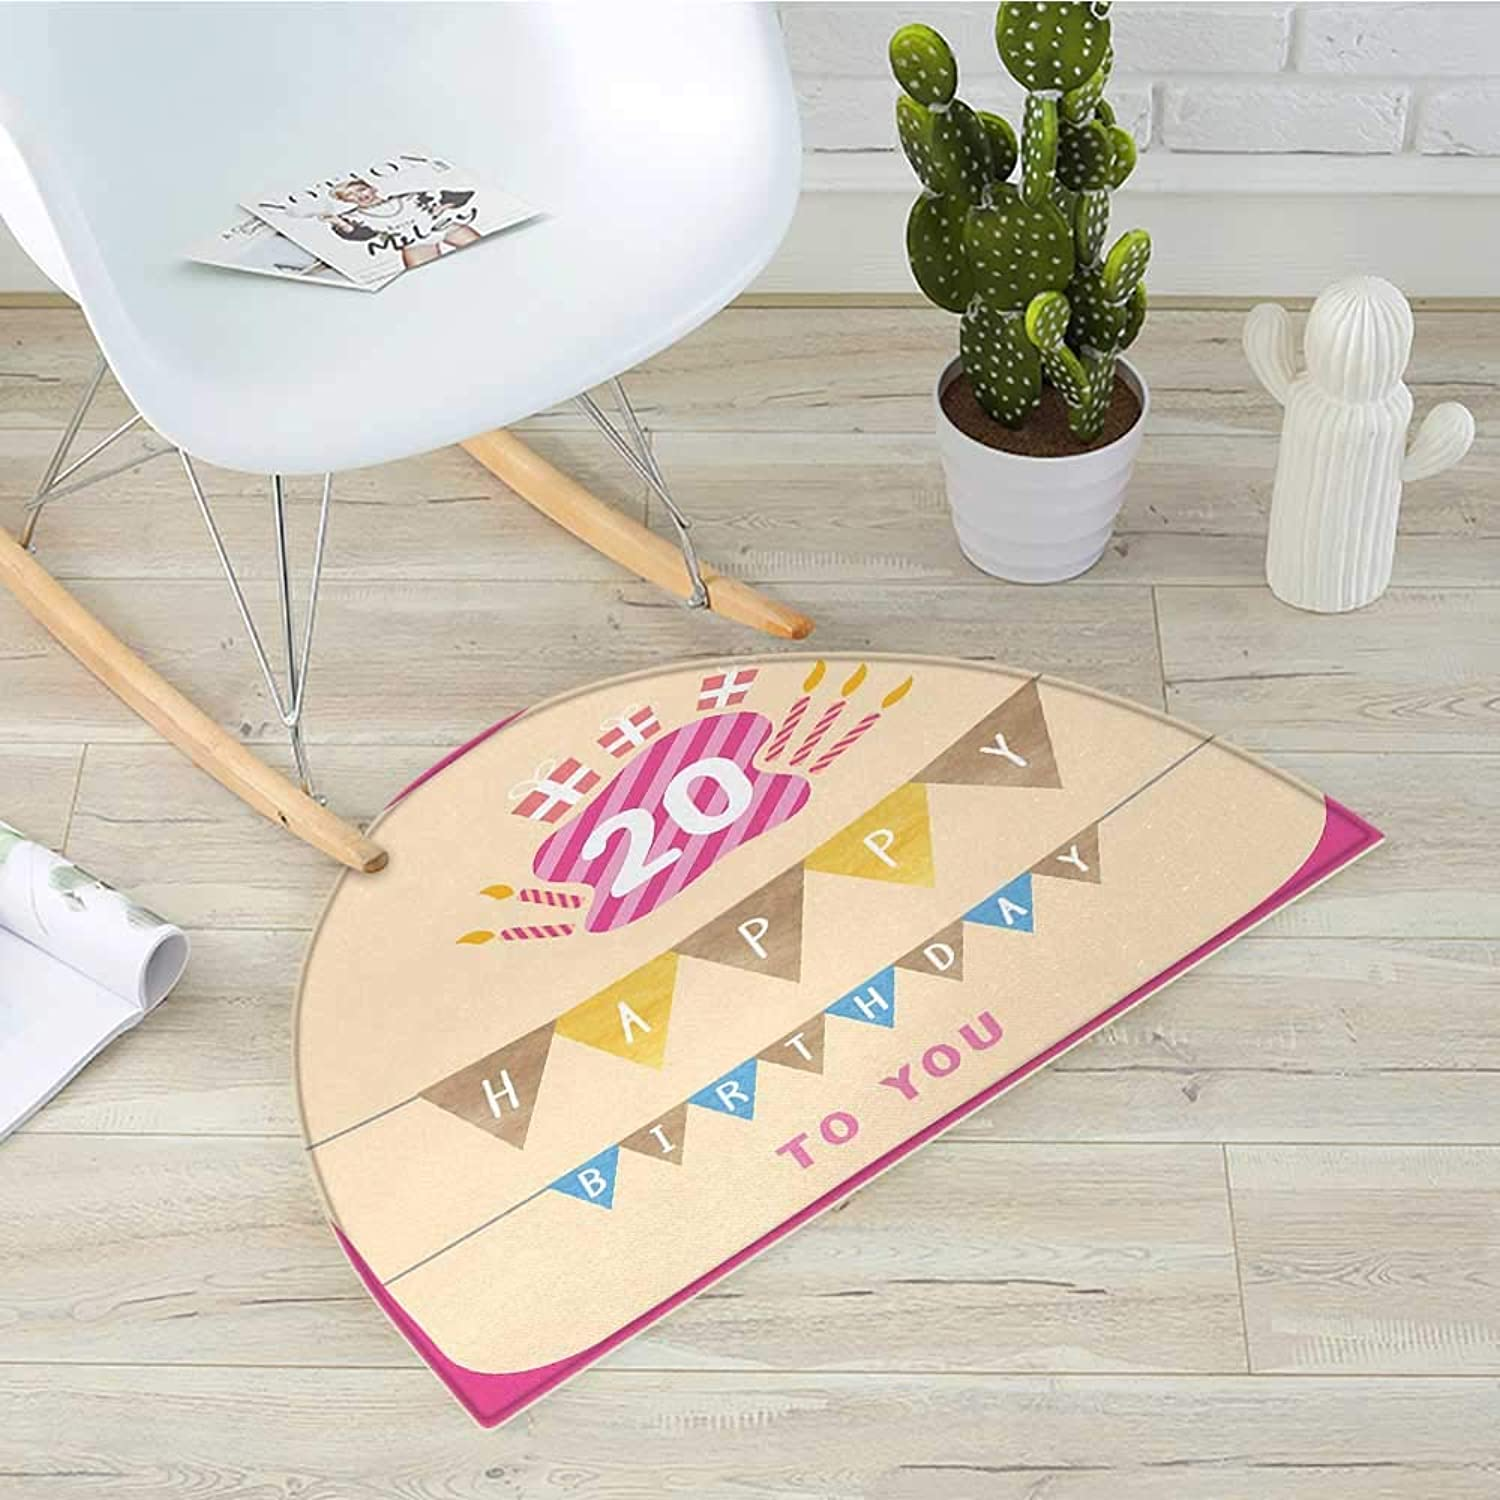 20th Birthday Half Round Door mats Girly Party Themed with Cartoon Style Flags Cakes Boxes Image Bathroom Mat H 35.4  xD 53.1  Pale Pink and Purple